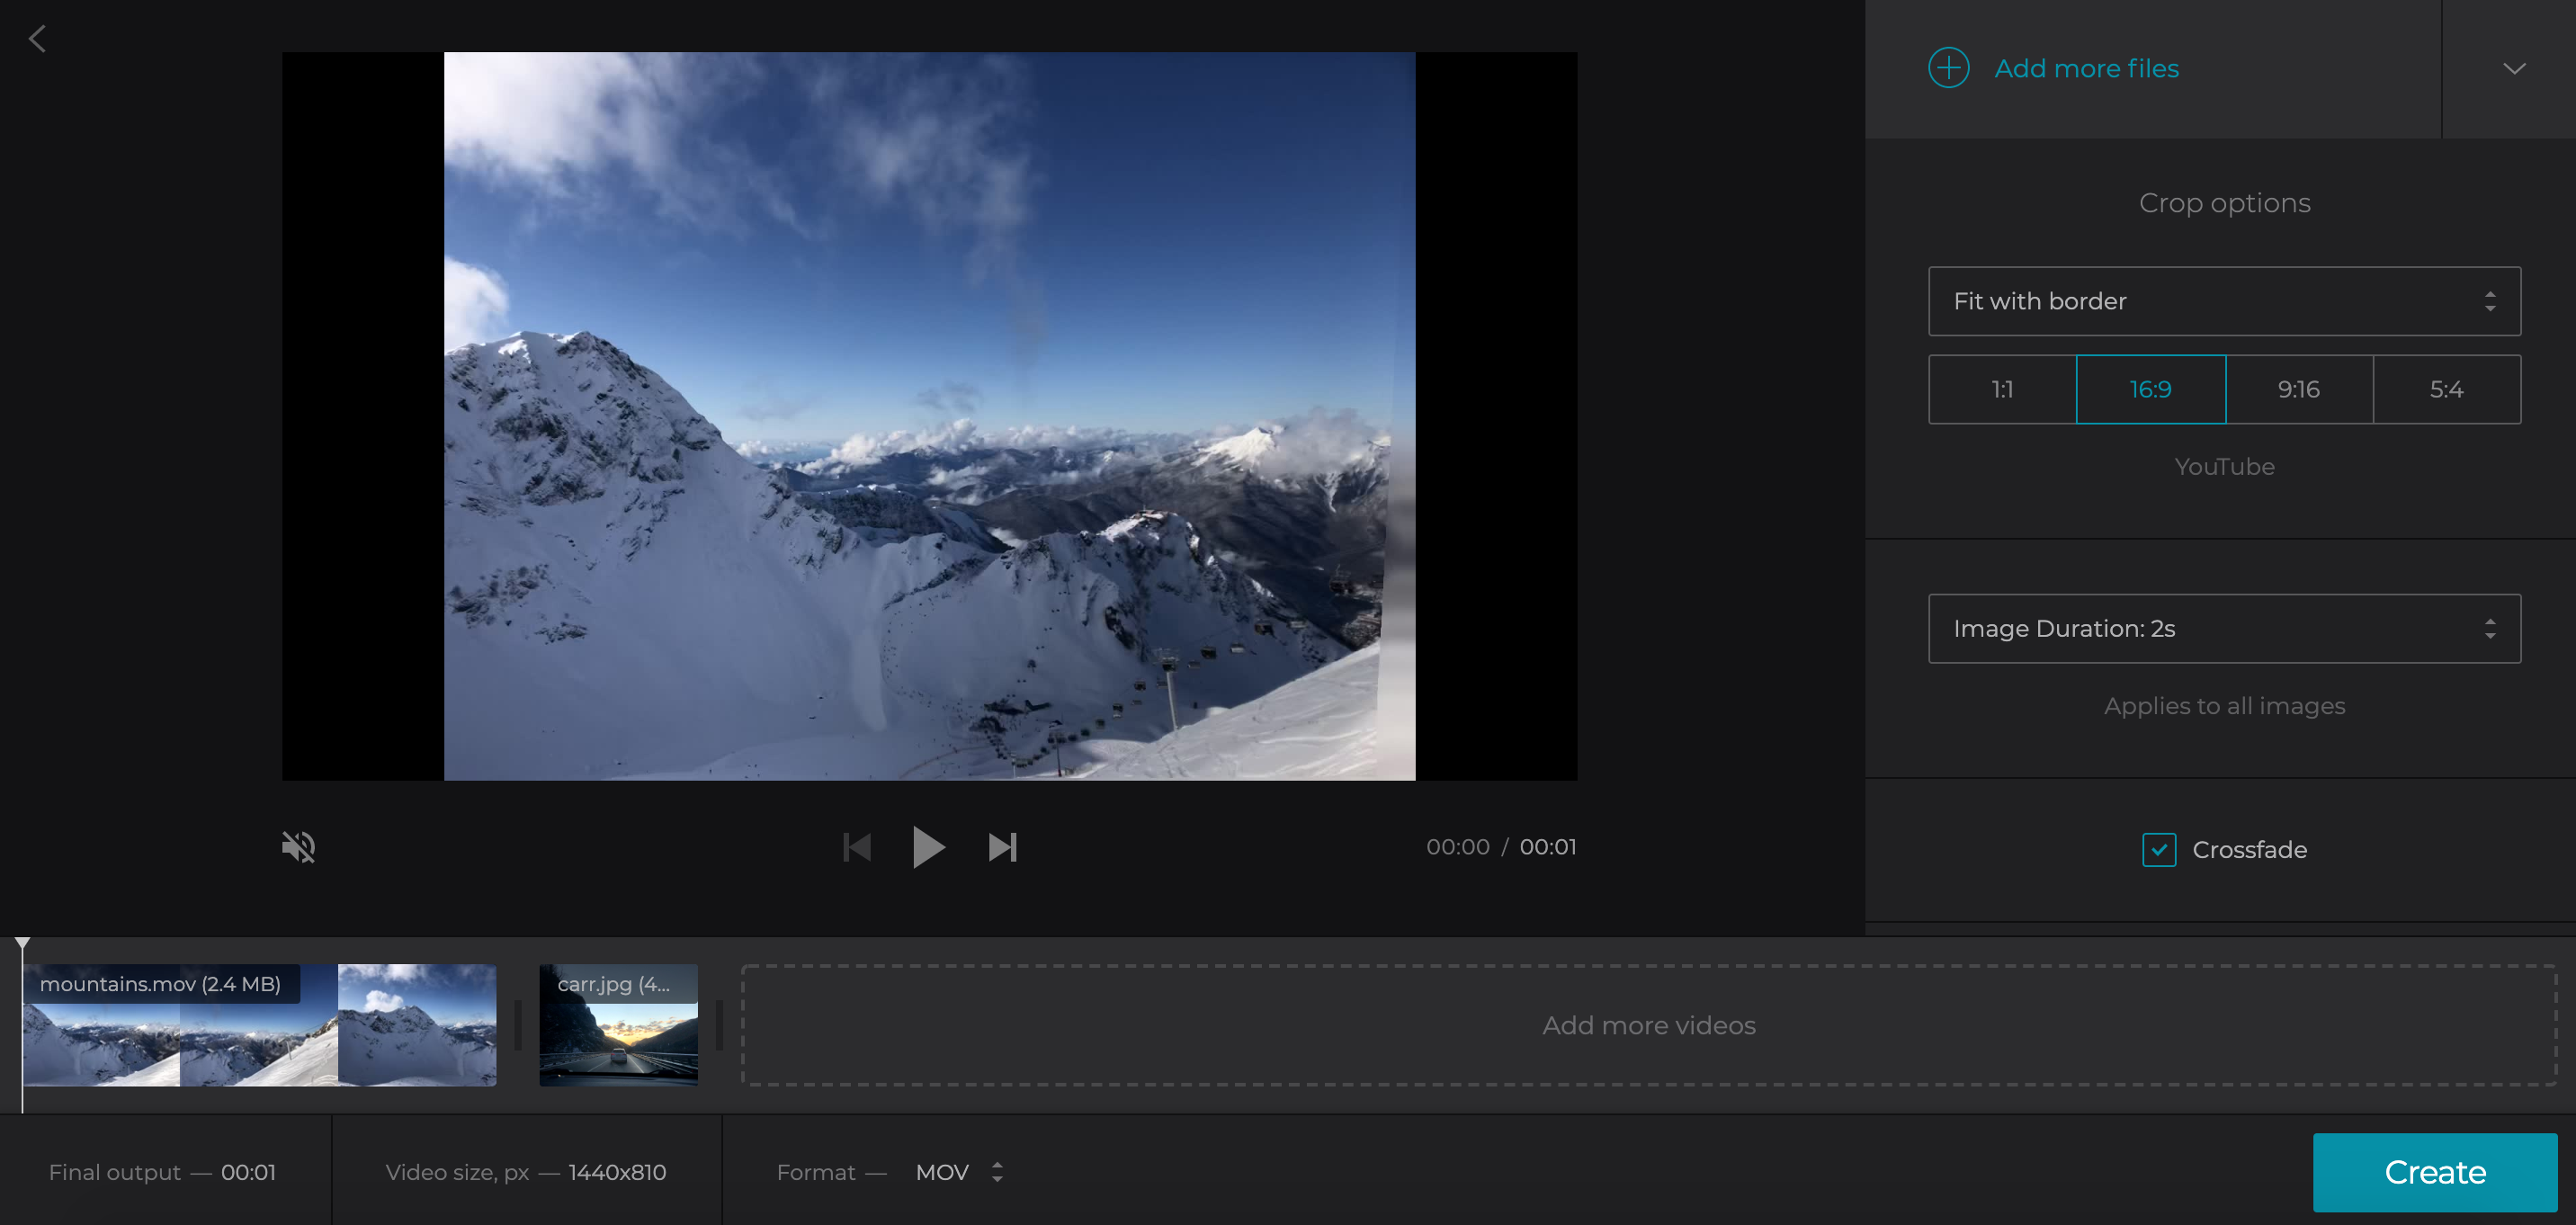 Set the duration for all images in YouTube video